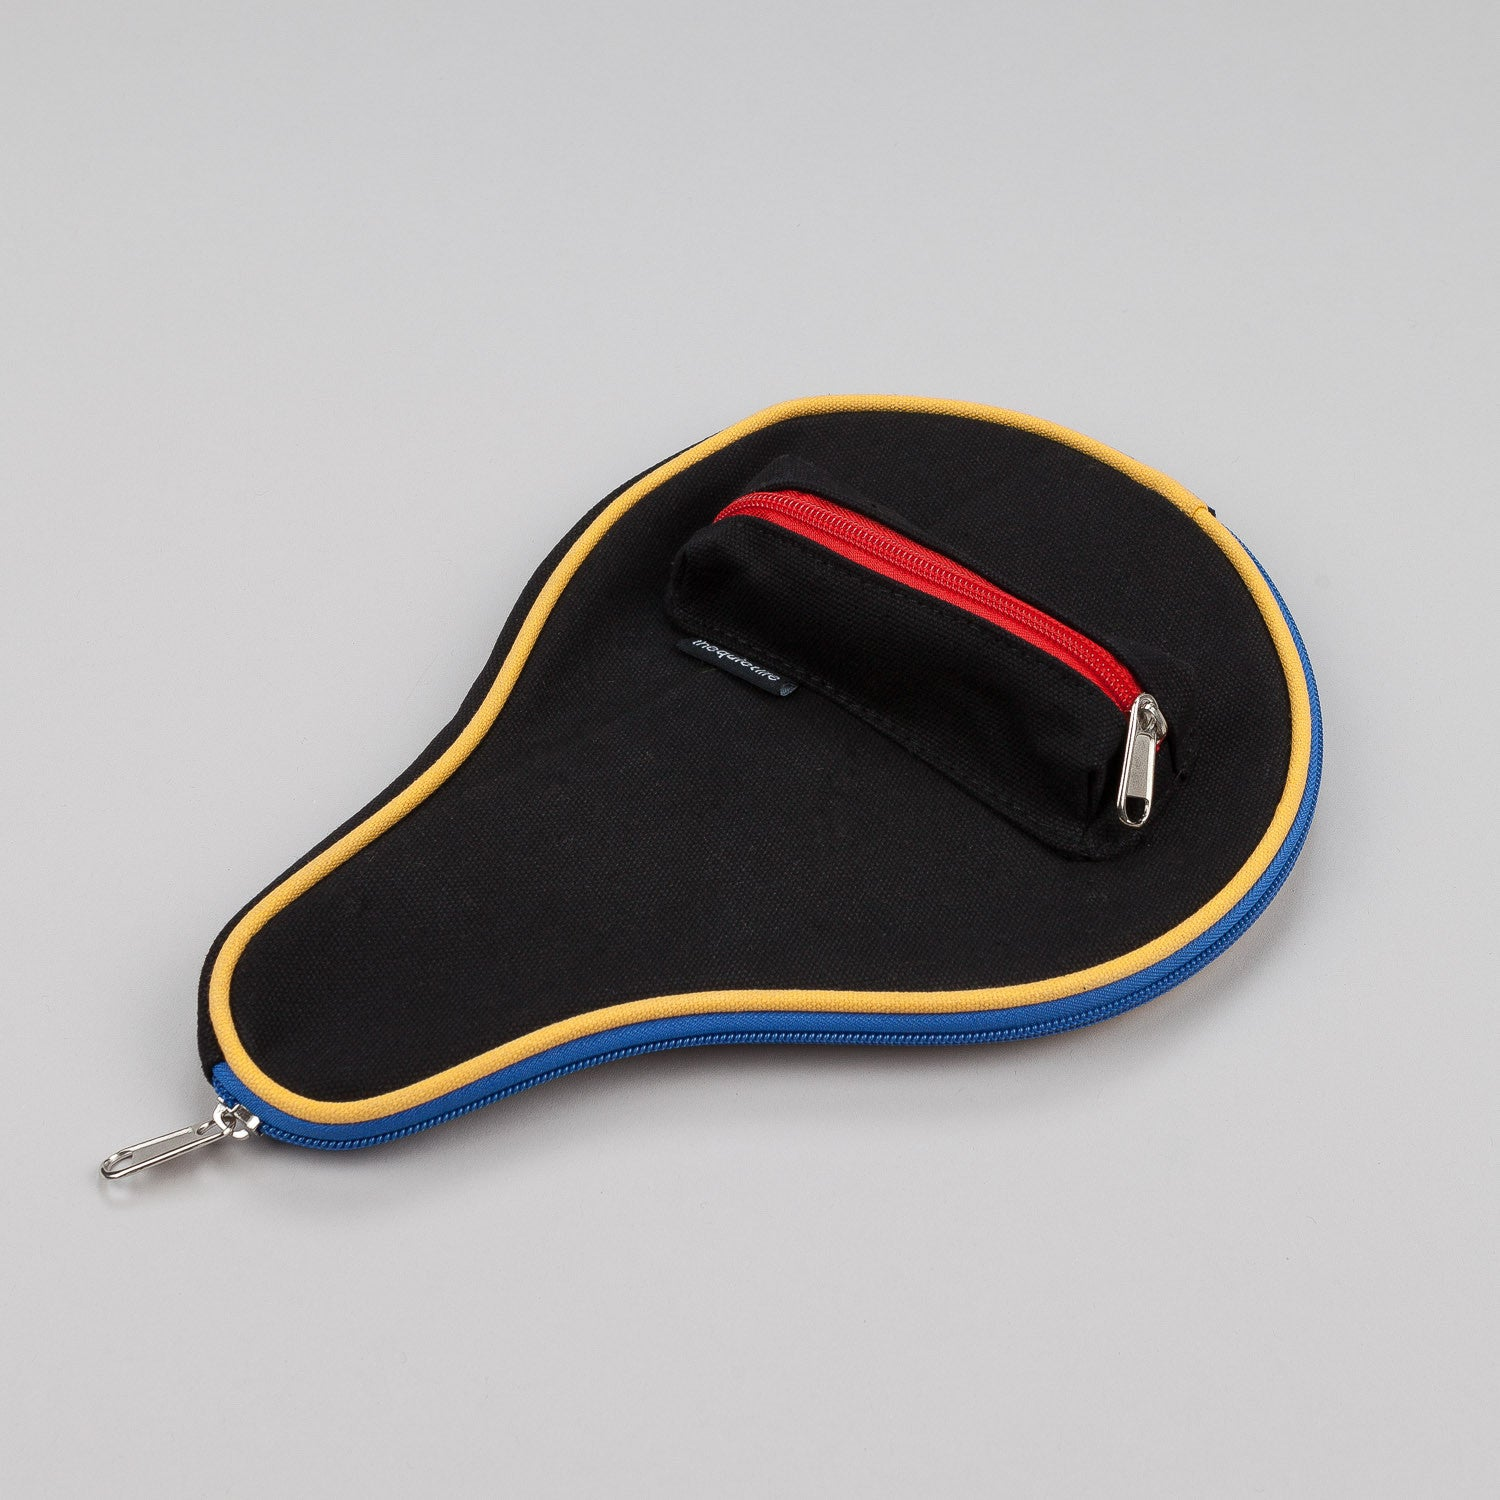 The Quiet Life Ping Pong Case - Black